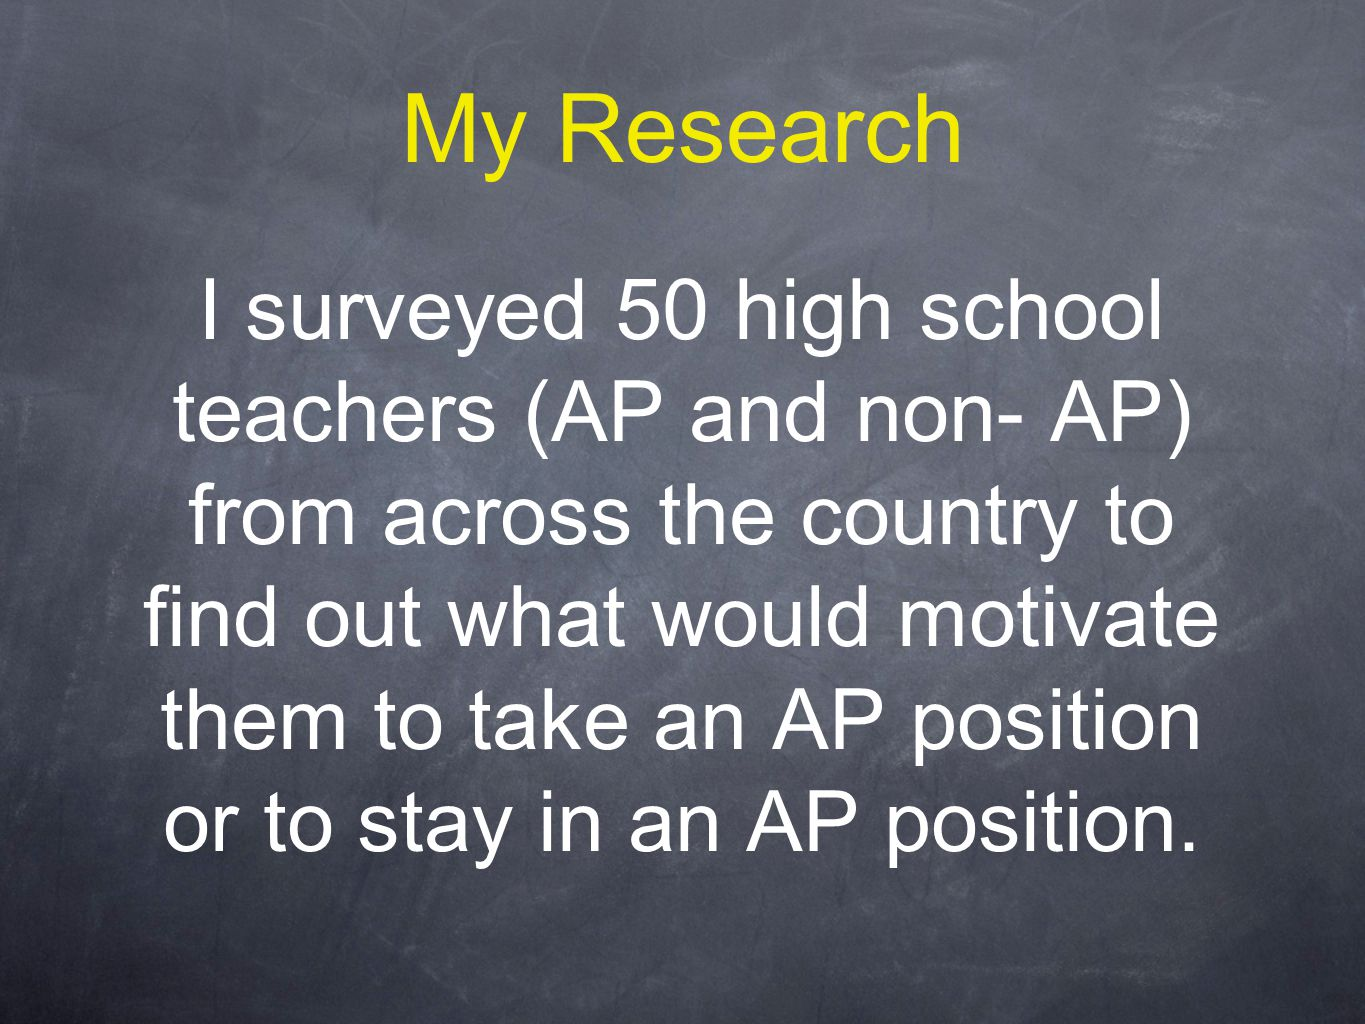 My Research I surveyed 50 high school teachers (AP and non- AP) from across the country to find out what would motivate them to take an AP position or to stay in an AP position.